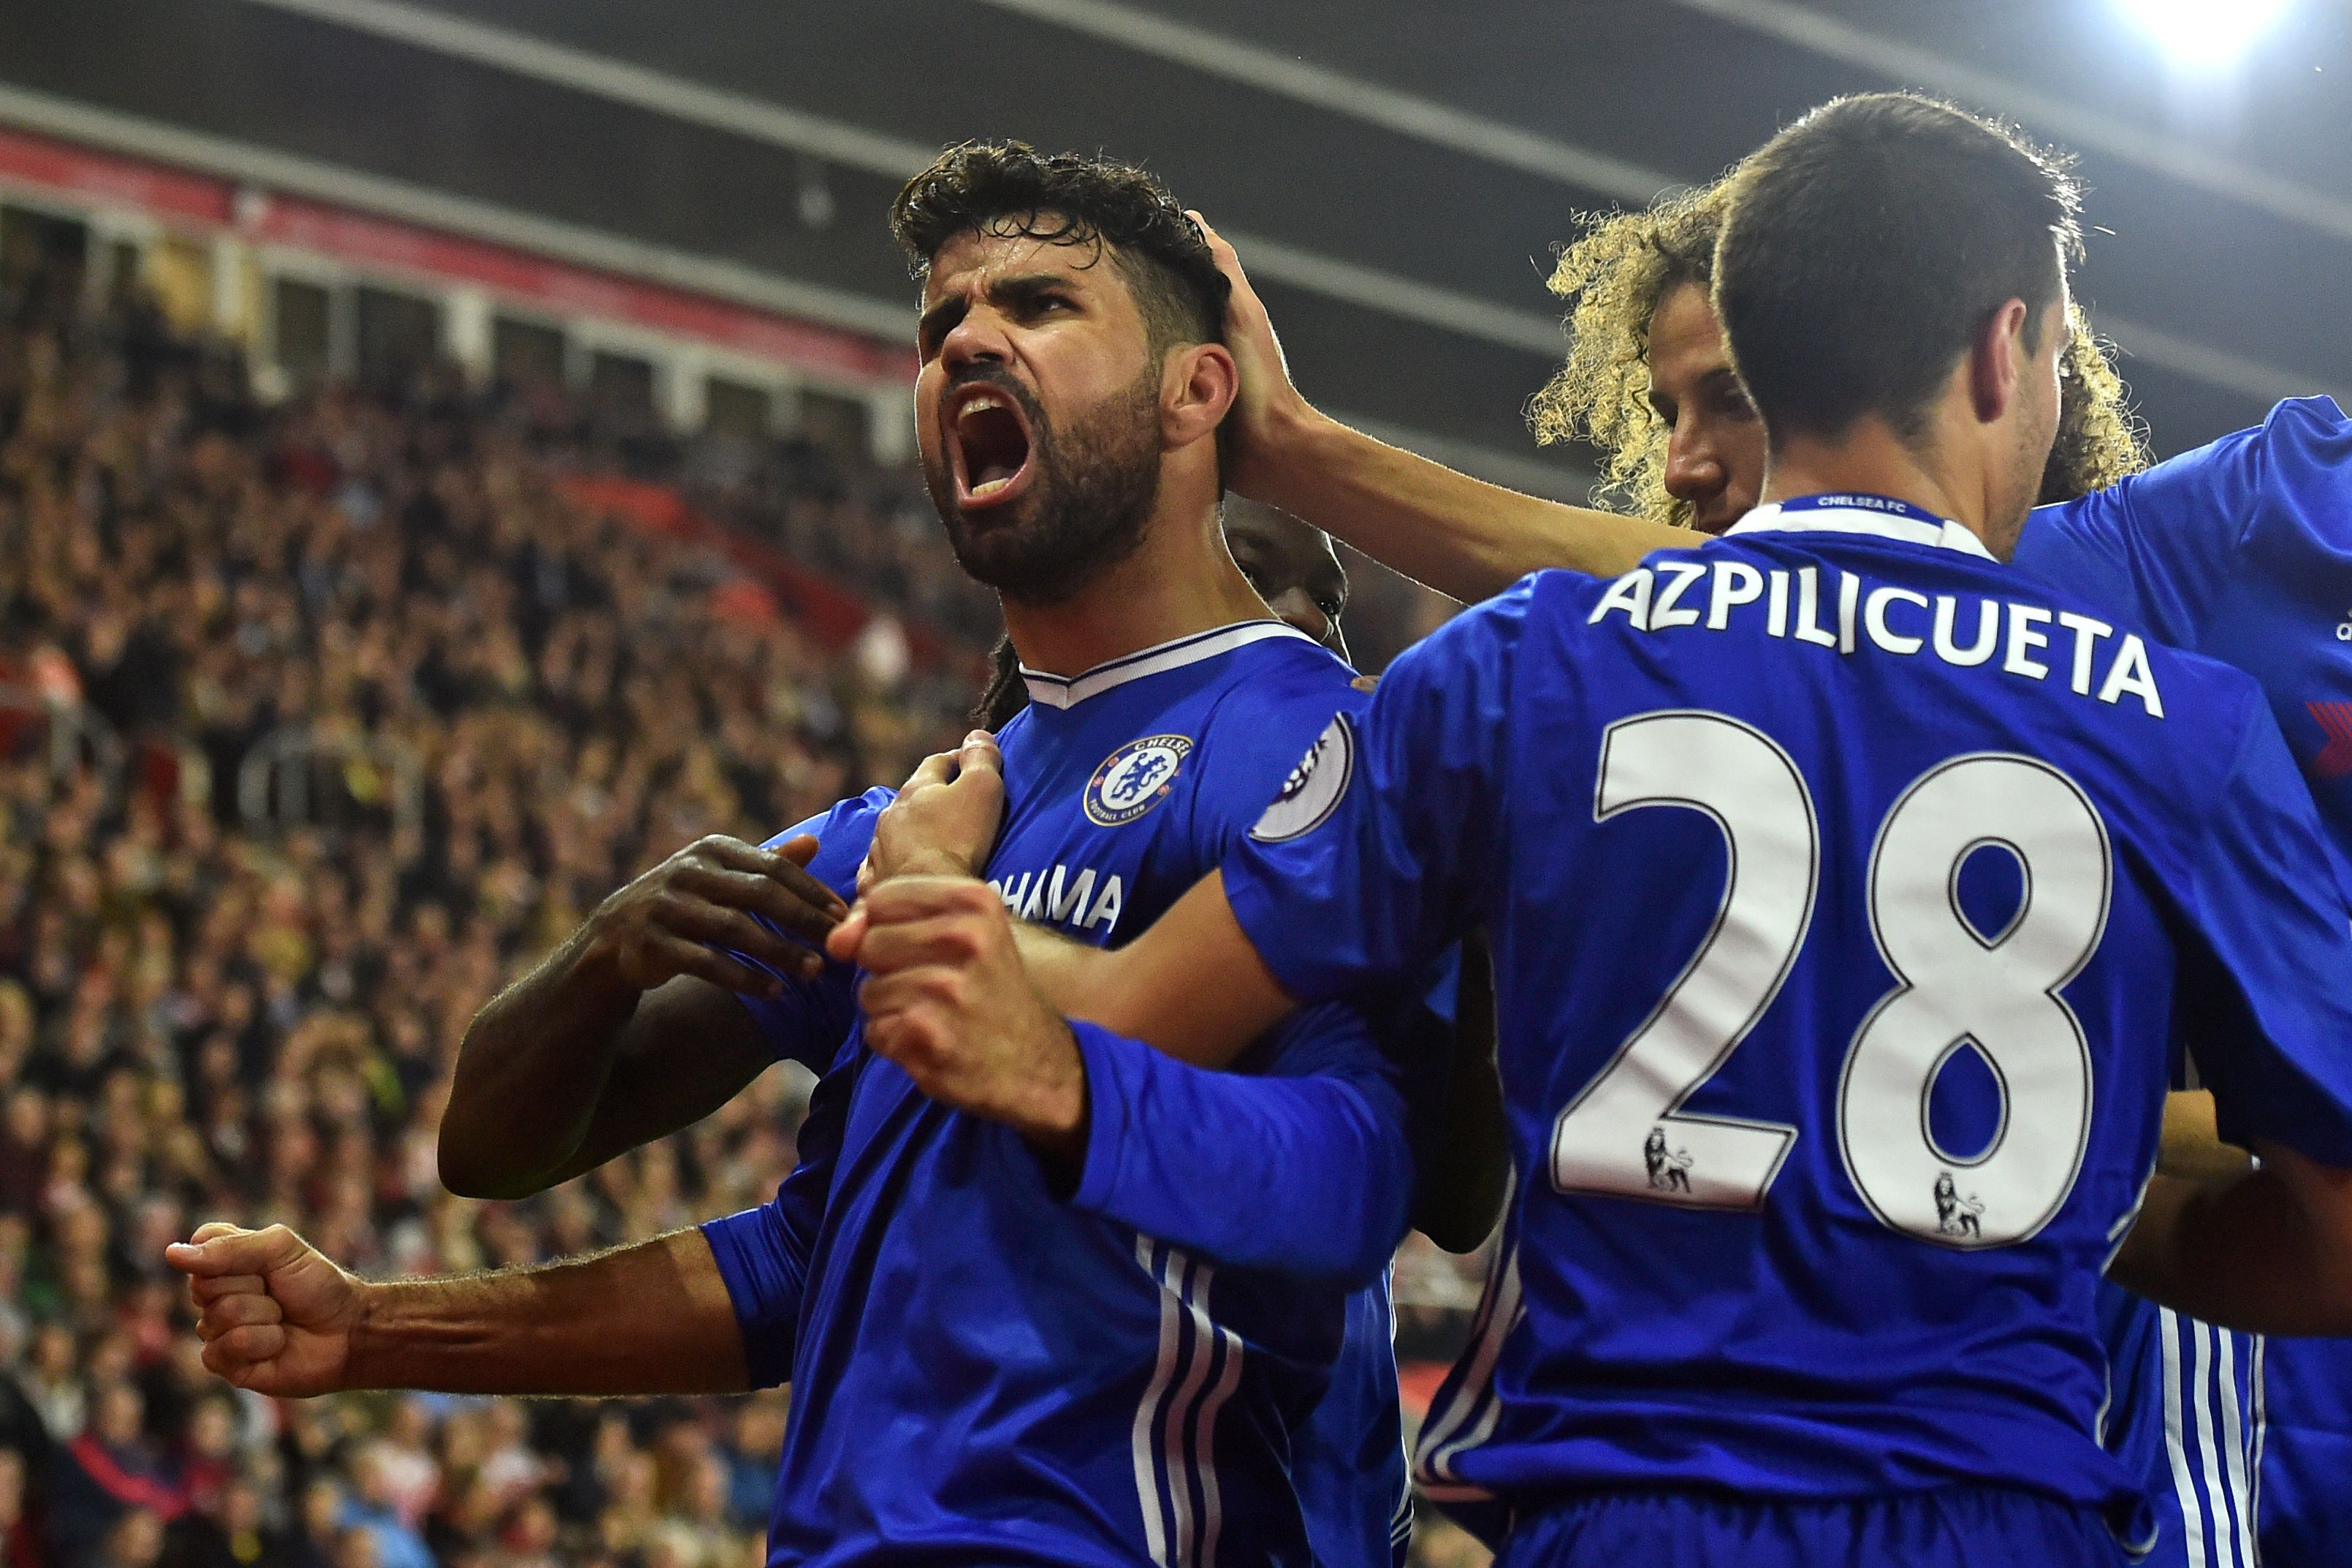 Chelsea's Brazilian-born Spanish striker Diego Costa (L) celebrates scoring their second goal during the English Premier League football match between Southampton and Chelsea at St Mary's Stadium in Southampton, southern England on October 30, 2016. / AFP / GLYN KIRK / RESTRICTED TO EDITORIAL USE. No use with unauthorized audio, video, data, fixture lists, club/league logos or 'live' services. Online in-match use limited to 75 images, no video emulation. No use in betting, games or single club/league/player publications. / (Photo credit should read GLYN KIRK/AFP/Getty Images)